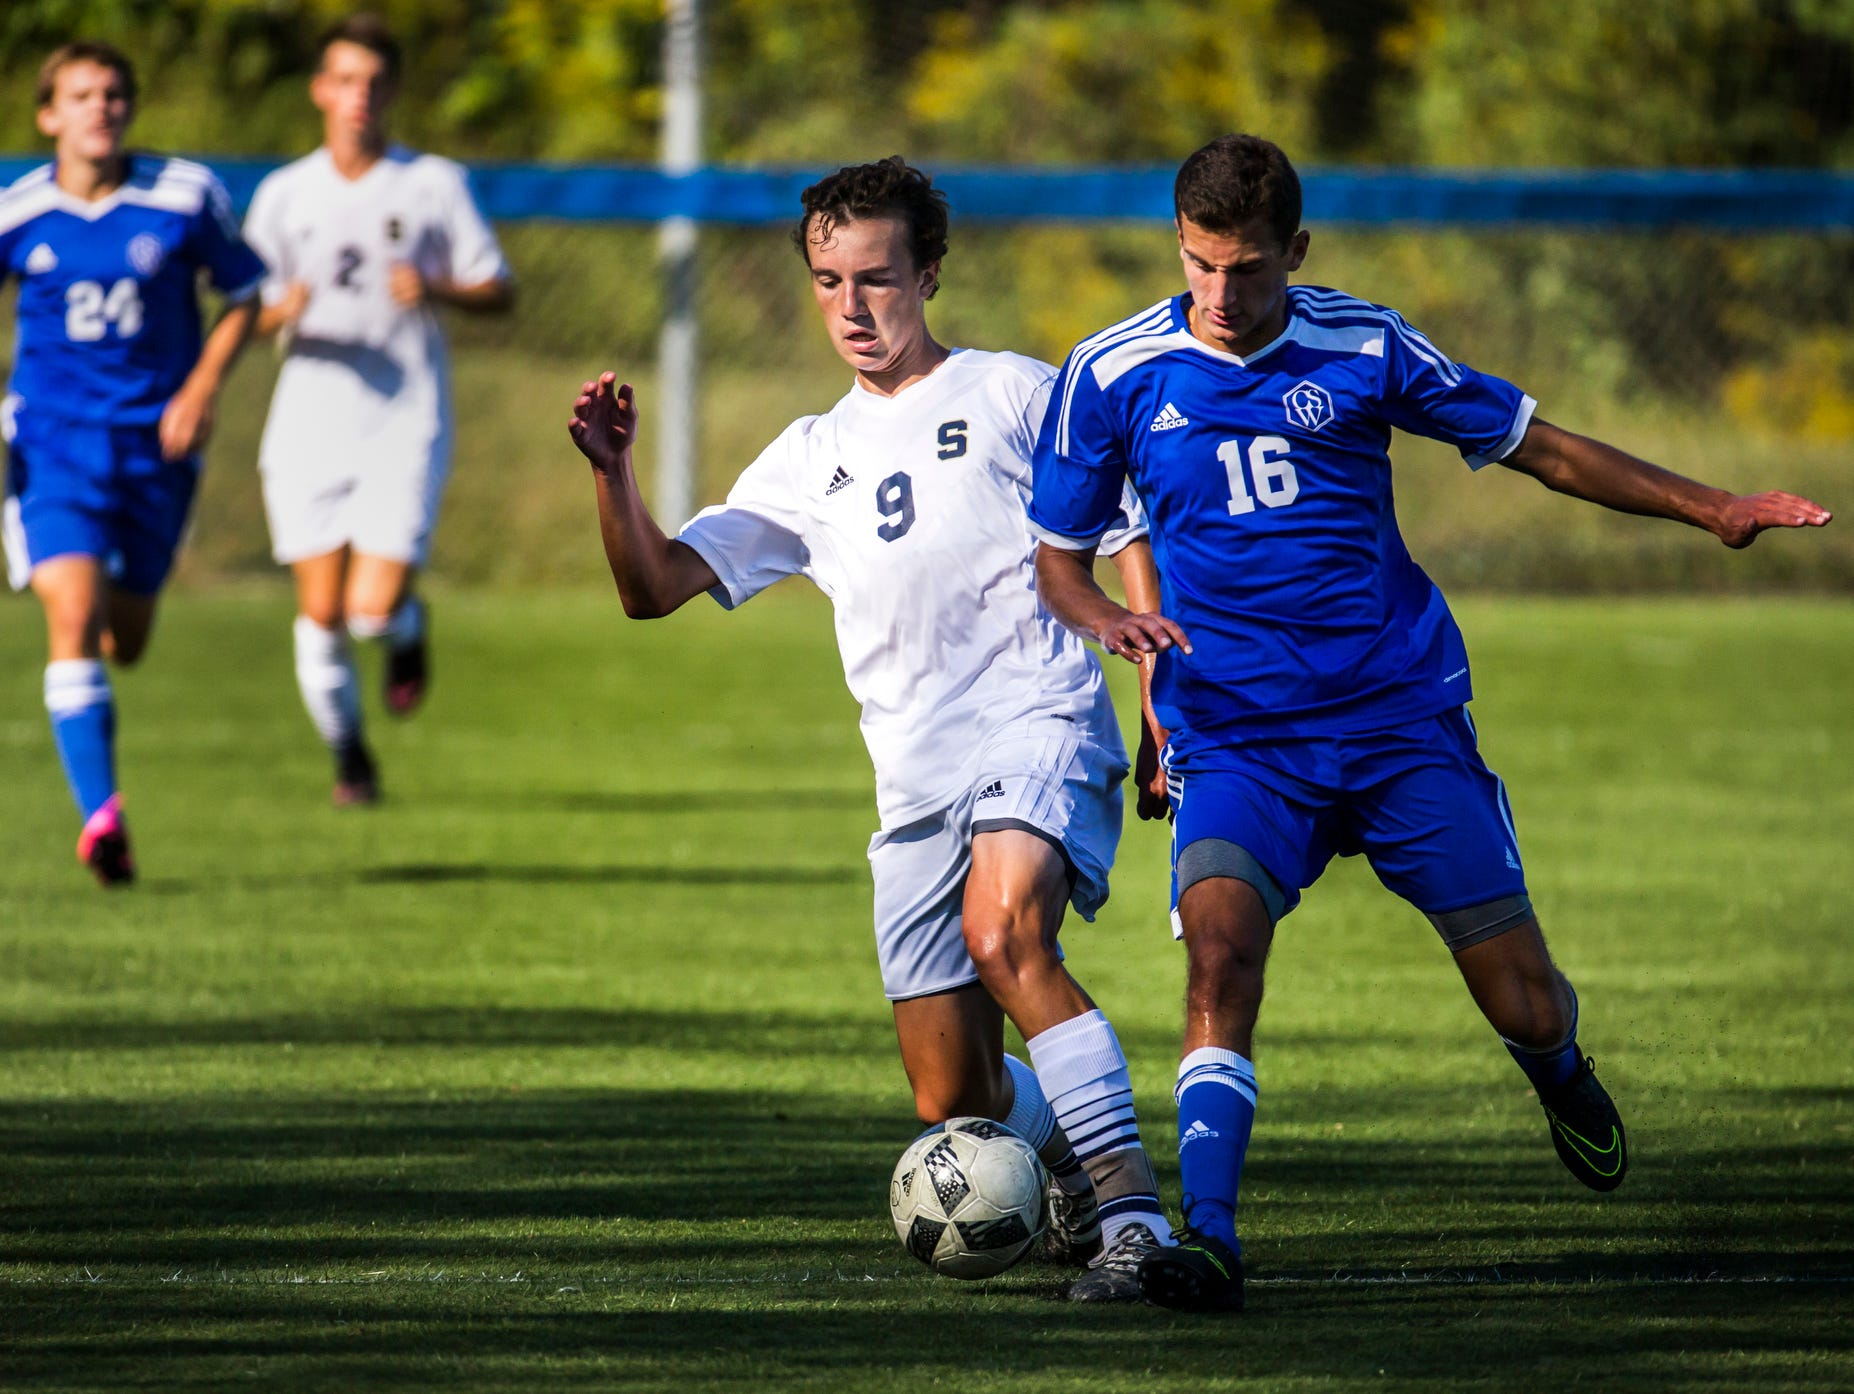 Salesianum's James Strine (No. 9) fights for position on the ball with Wilmington Charter's Andrew Amato (No. 16) in the first half of Salesianum's 1-0 win over Wilmington Charter at the Hockessin Soccer Club in Hockessin on Thursday afternoon.